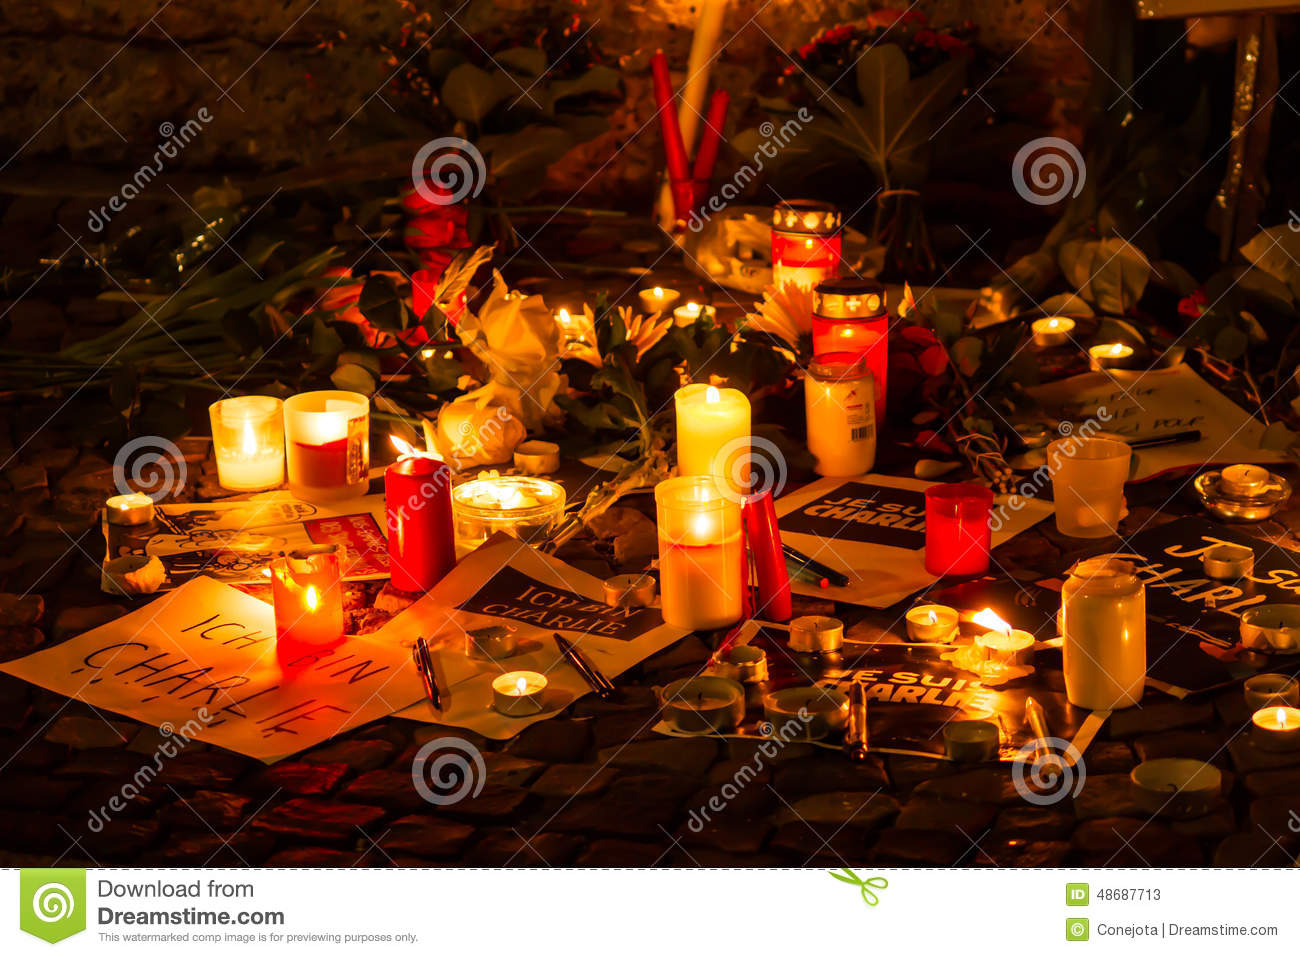 Charlie hebdo terrorism attack editorial stock photo Design attack berlin